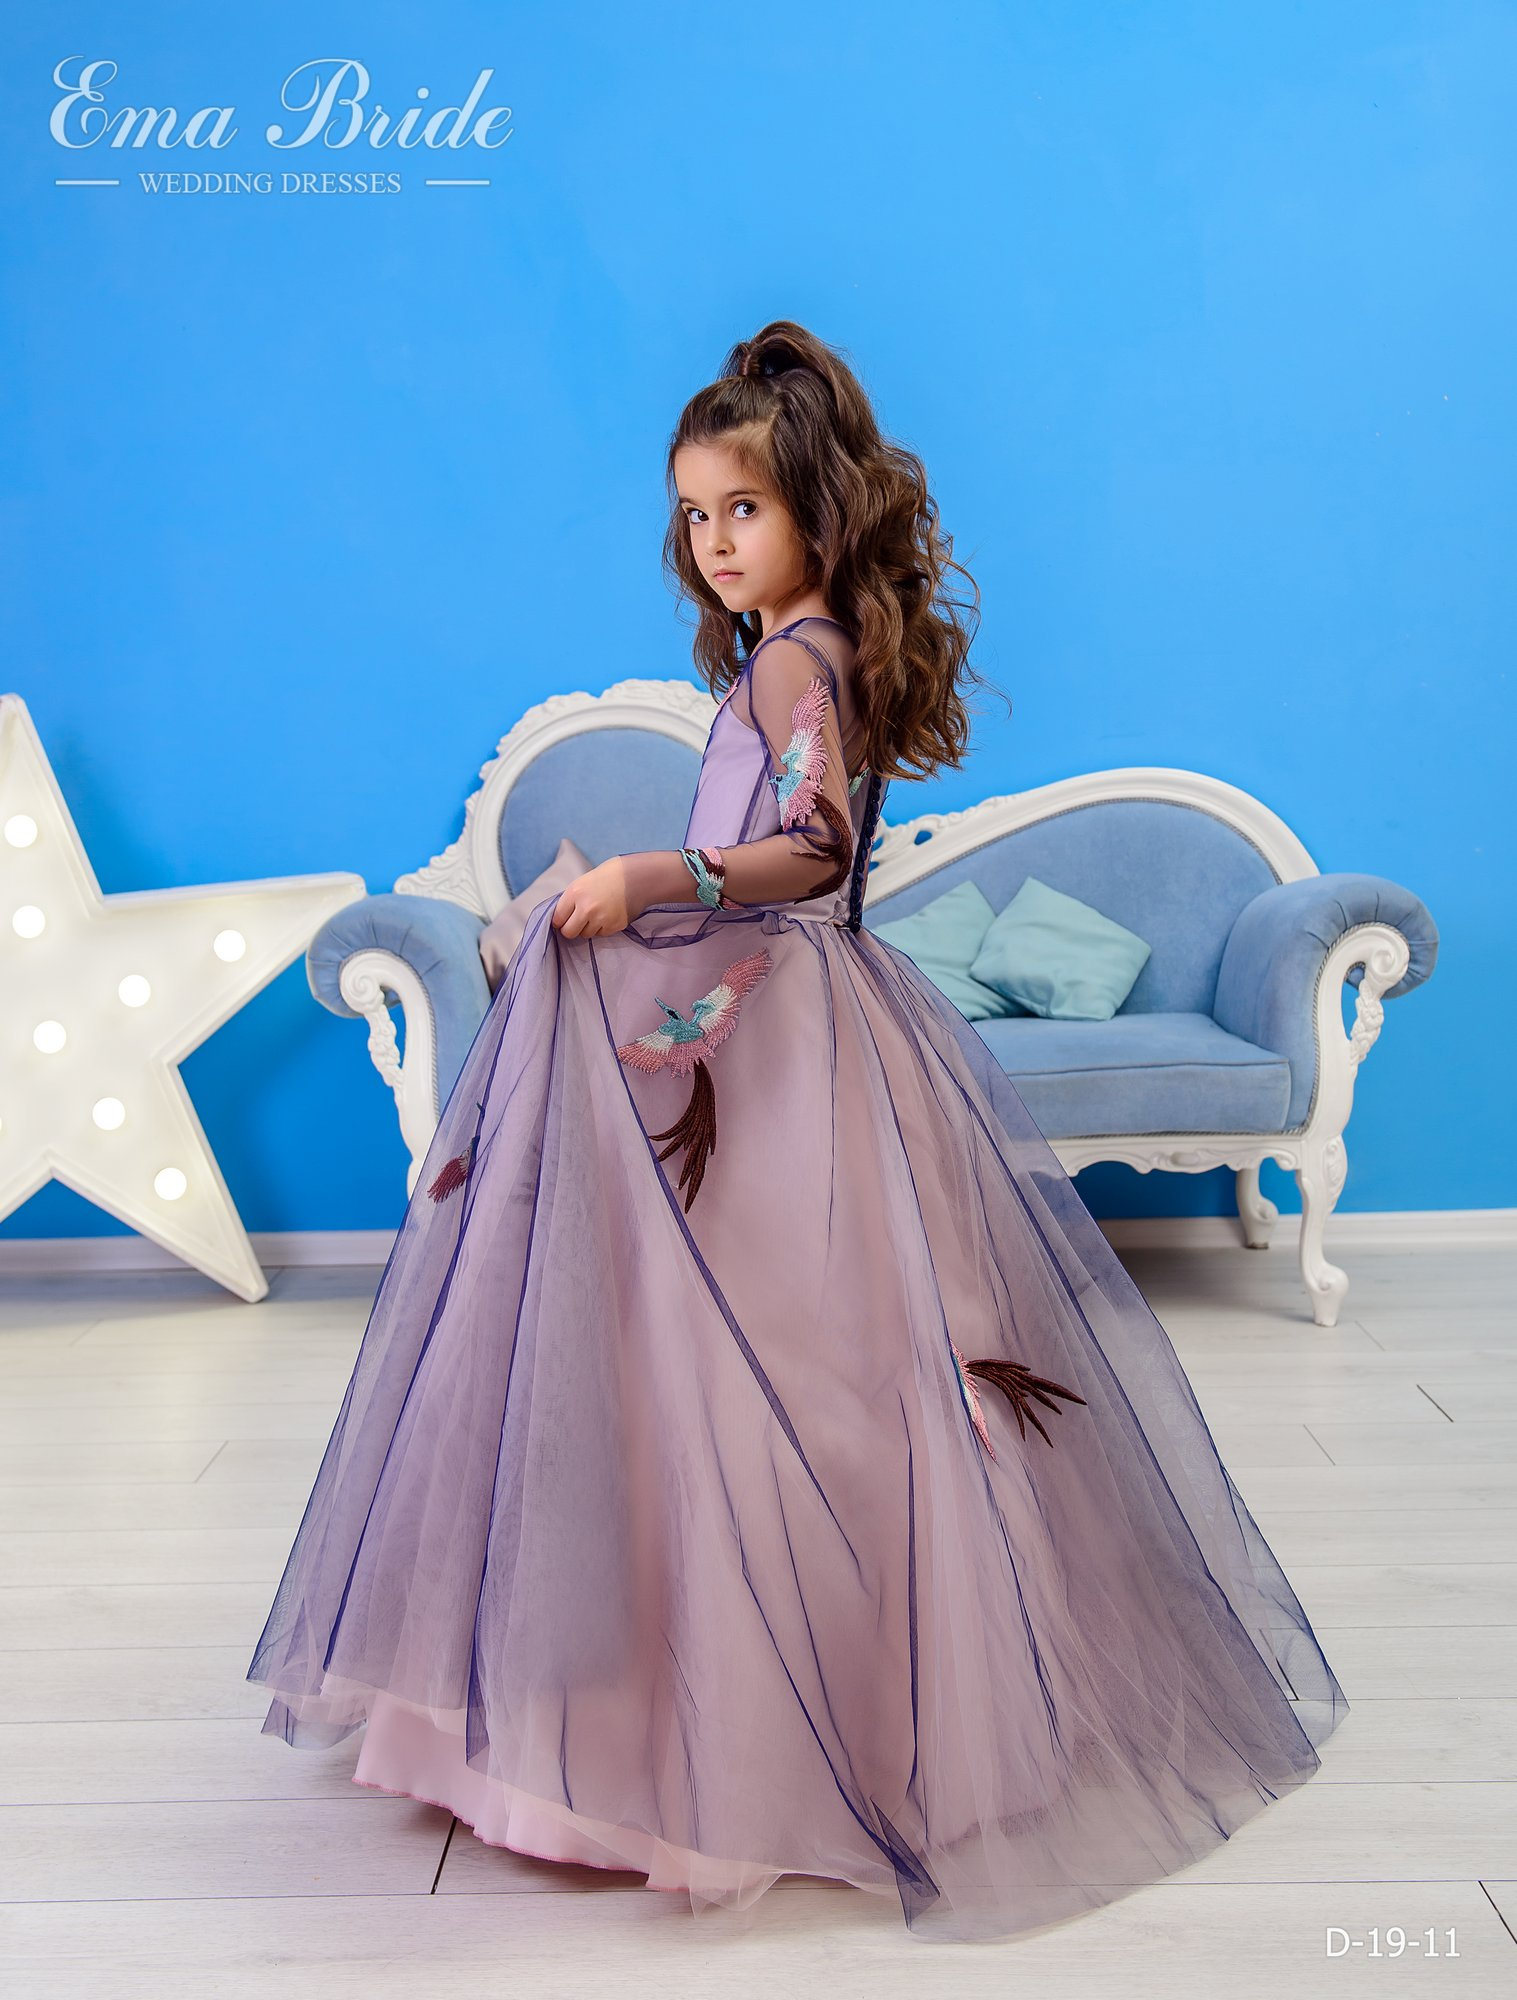 Children's dress by EmaBride D-19-11 2019-3